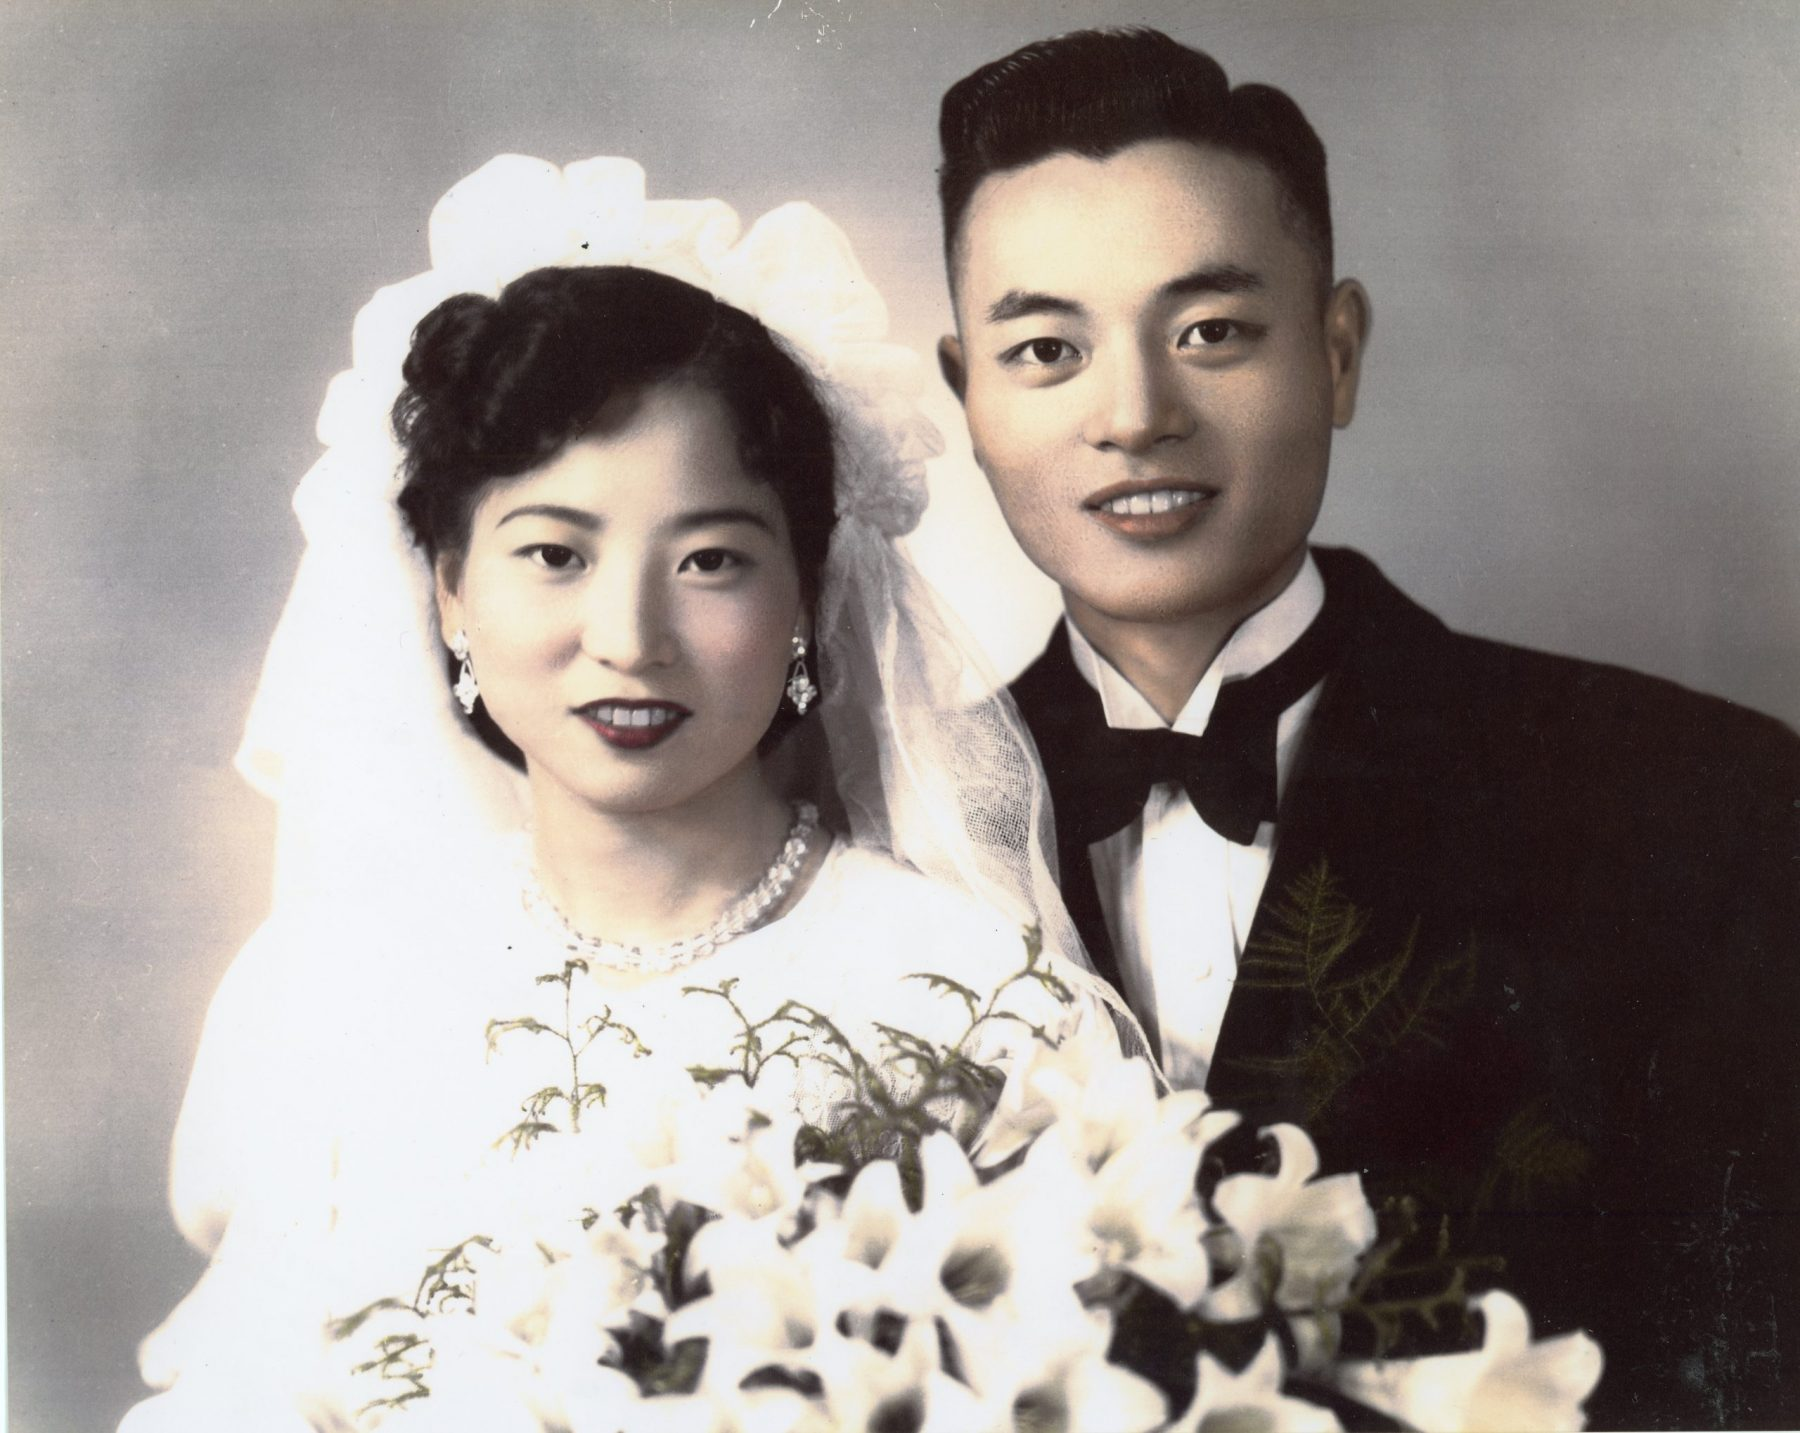 Dr. and Mrs. James S. C. Chao on their wedding day.